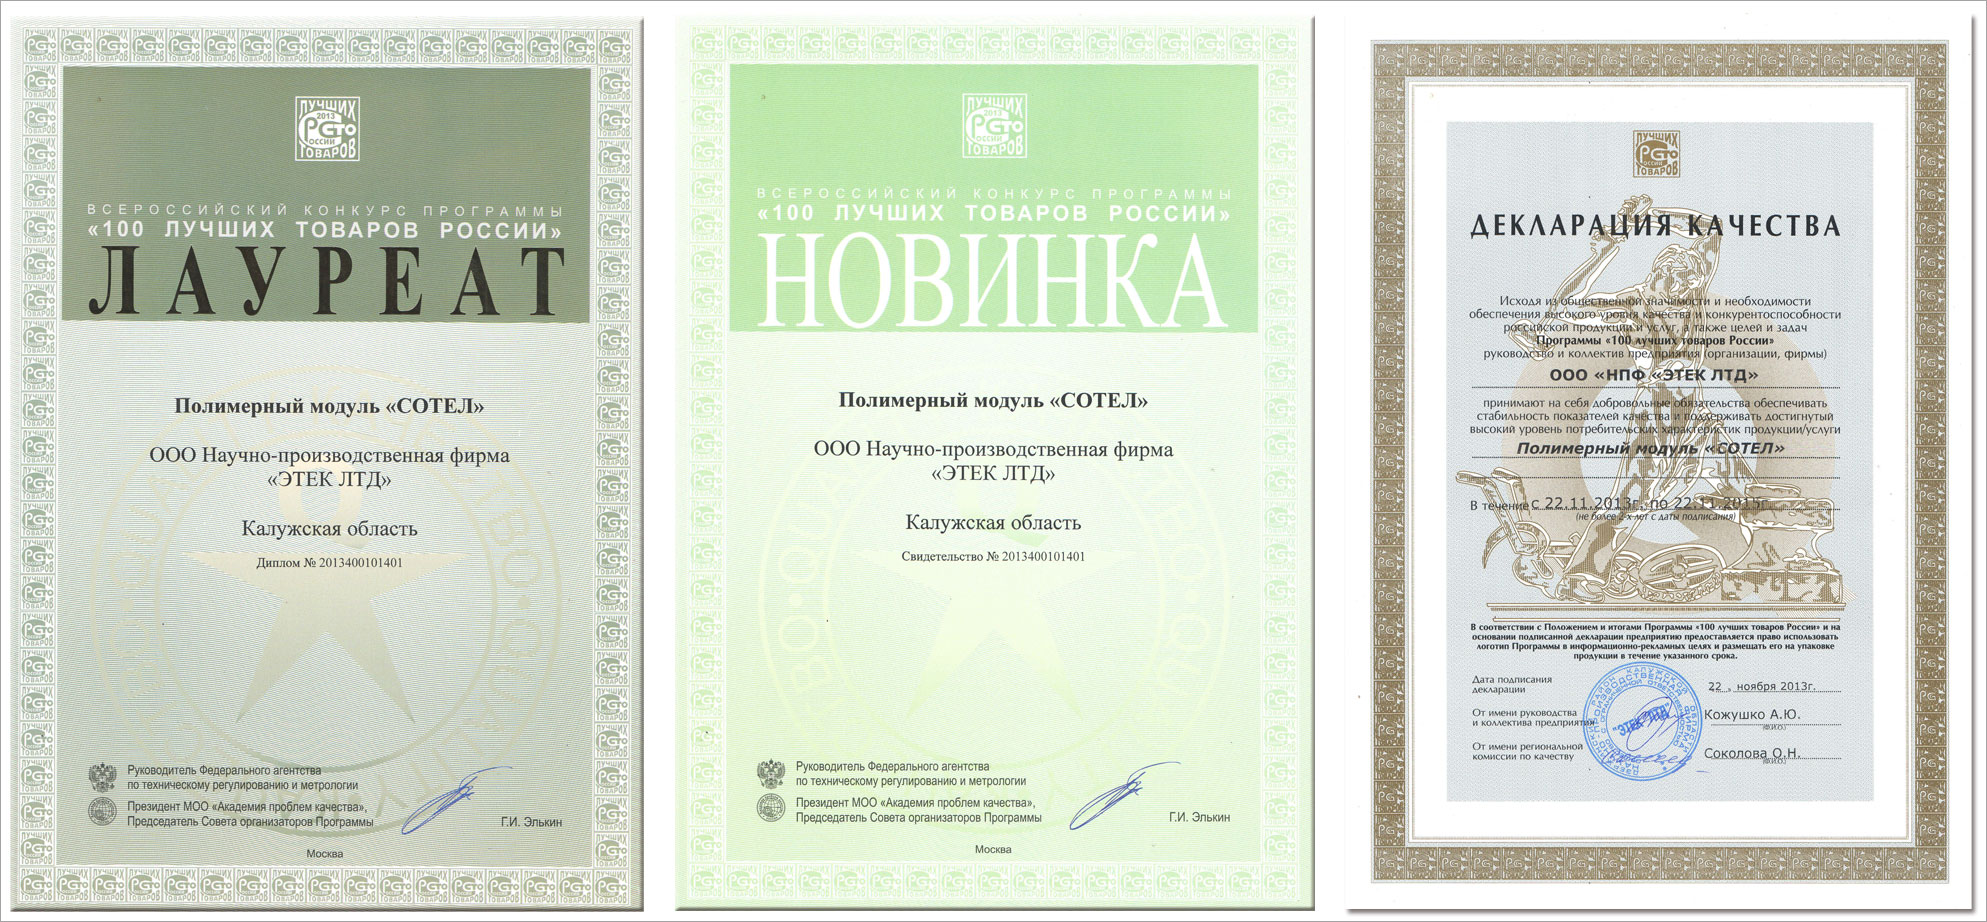 SOTEL polymer module awarded with a title of honor 100 Russia's best goods - 2013